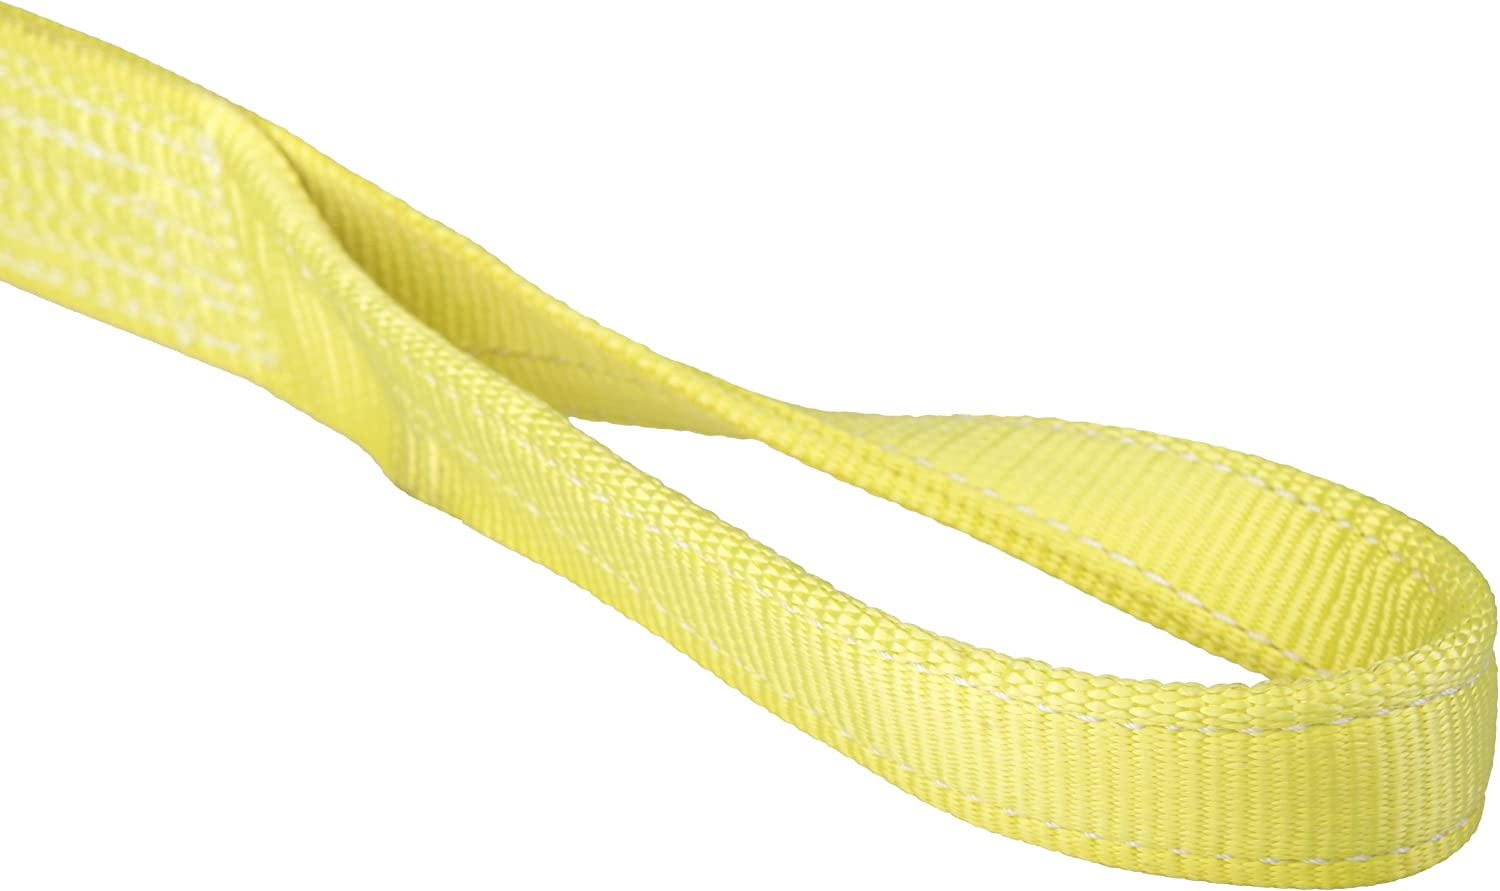 Mazzella EE1-904 Polyester Web Sling Ranking TOP12 Mail order 1 Ply Yellow Eye-and-Eye